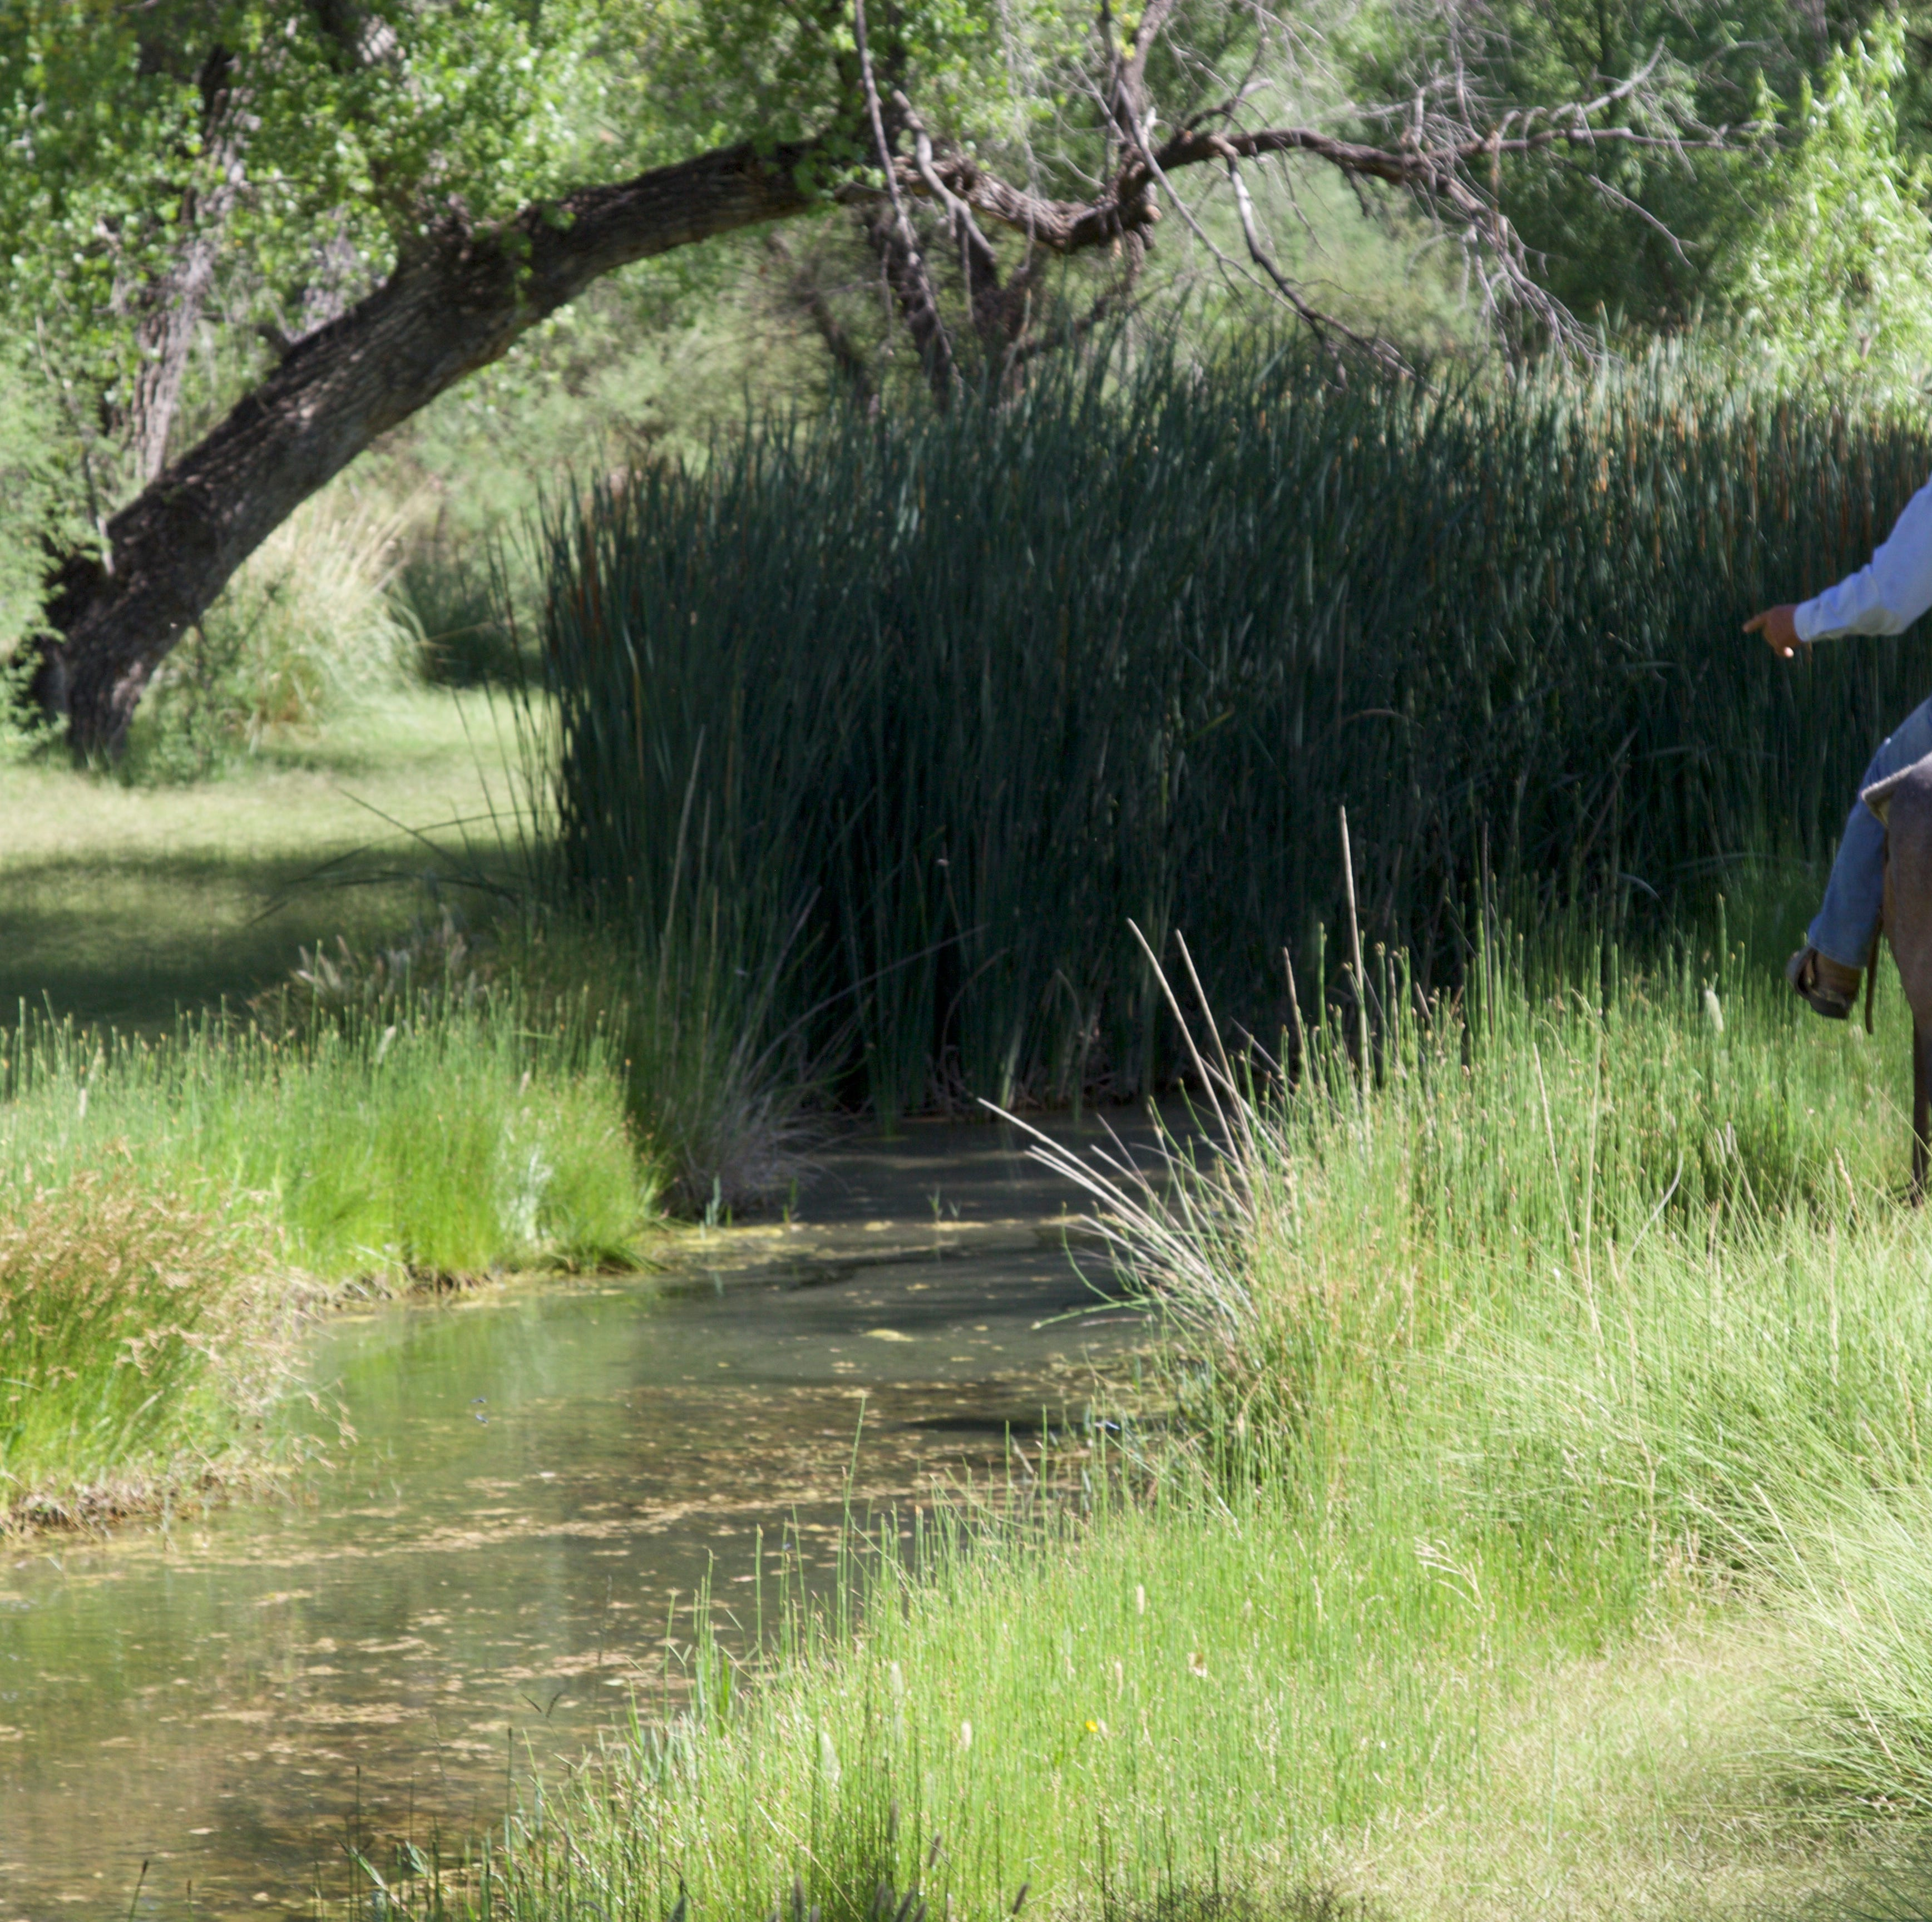 A rancher and an ecologist hike the desert, hunting for water and common ground on the San Pedro River